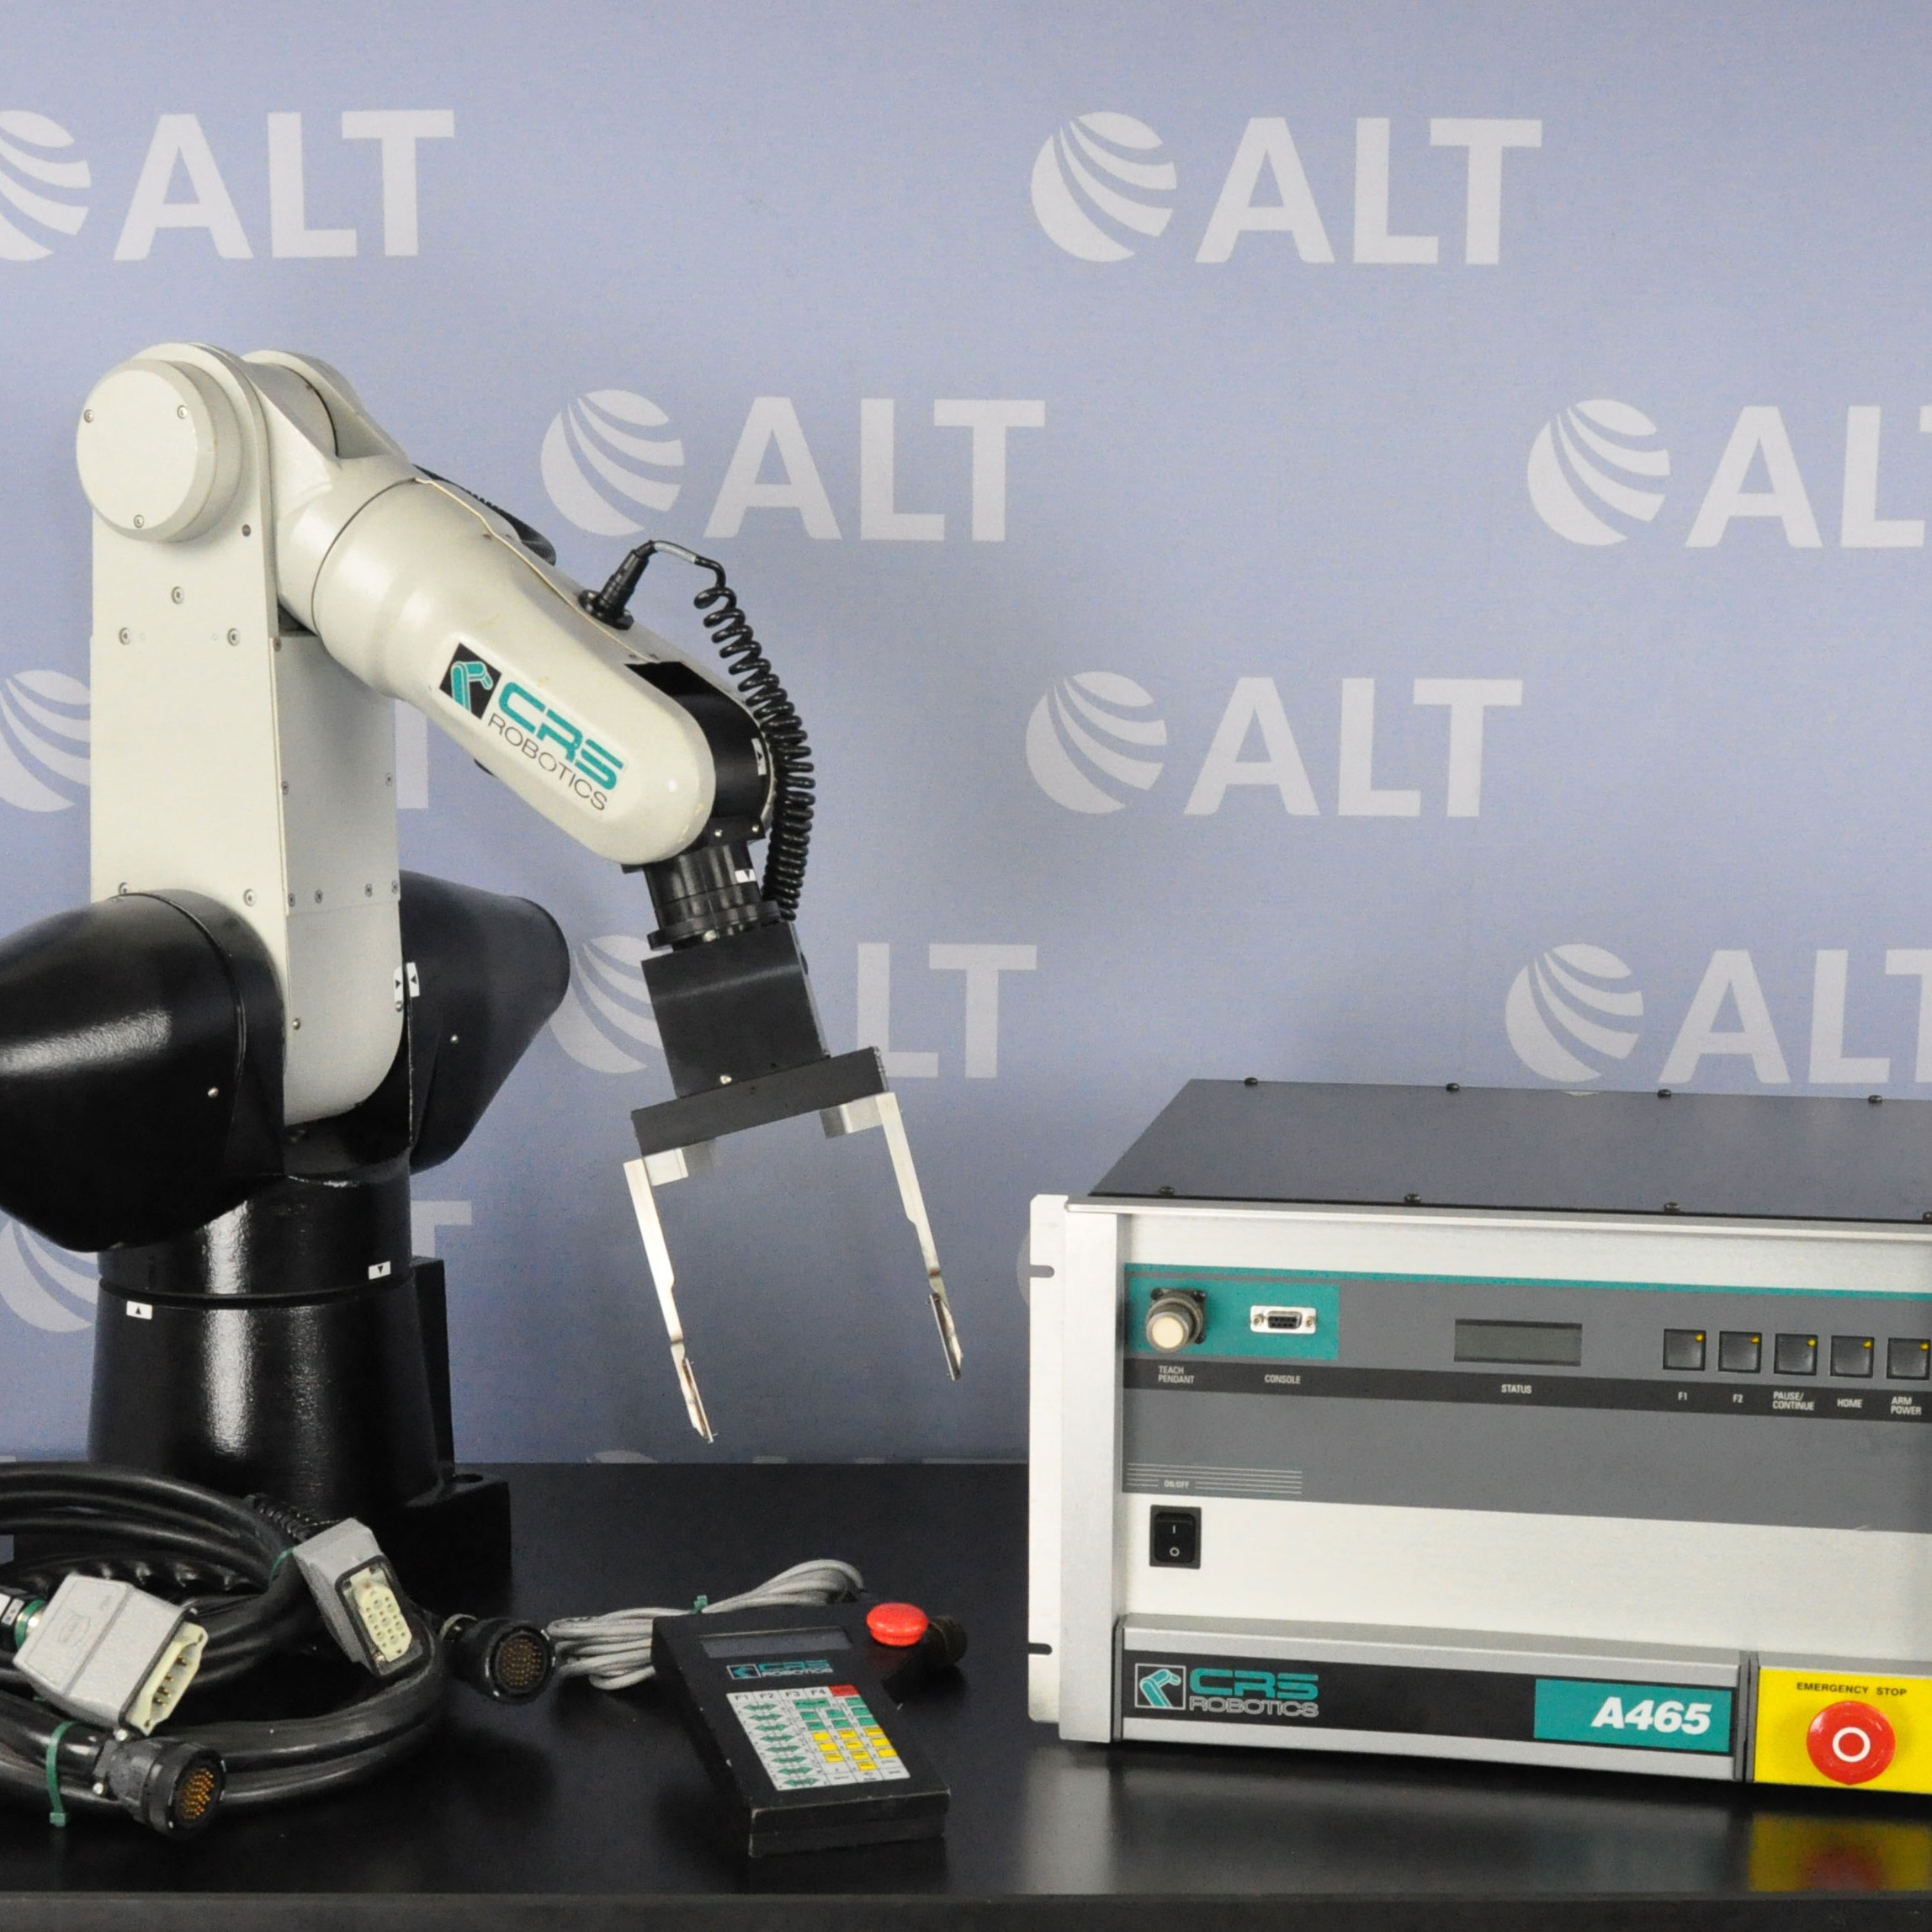 A465 Robot Arm with C500C Controller